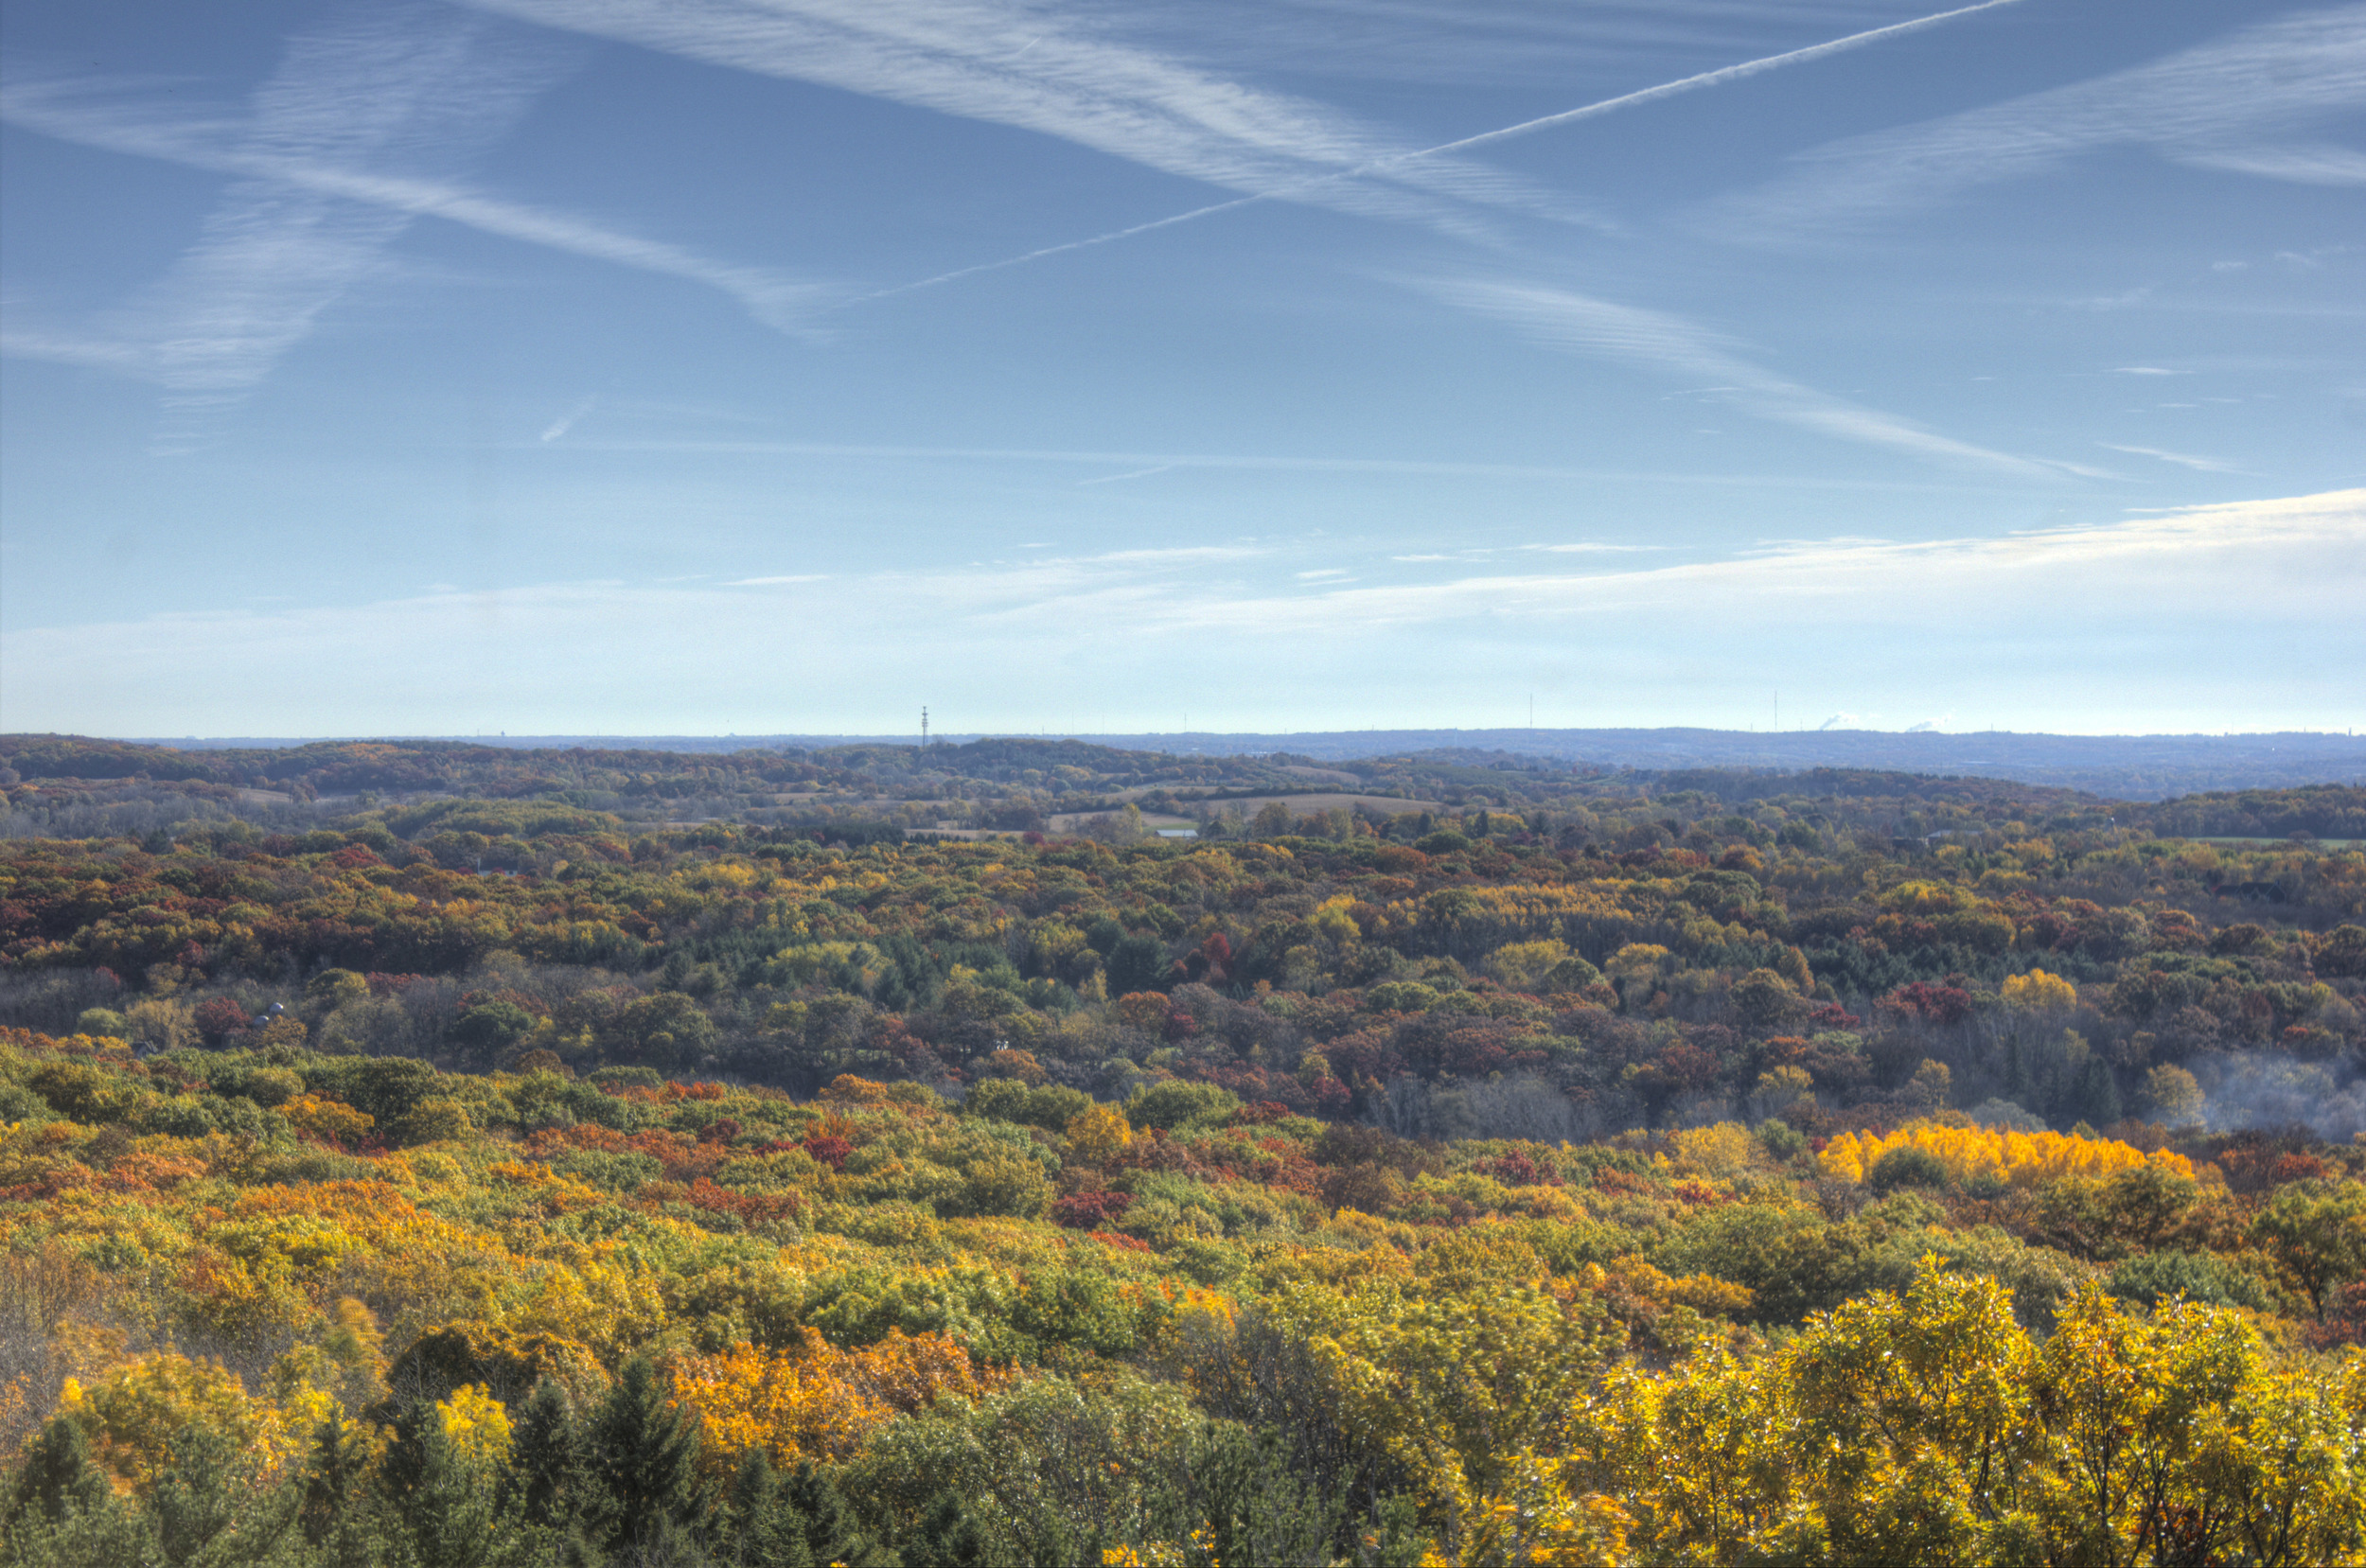 wisconsin-lapham-peak-state-park-full-view-of-the-forest.jpg